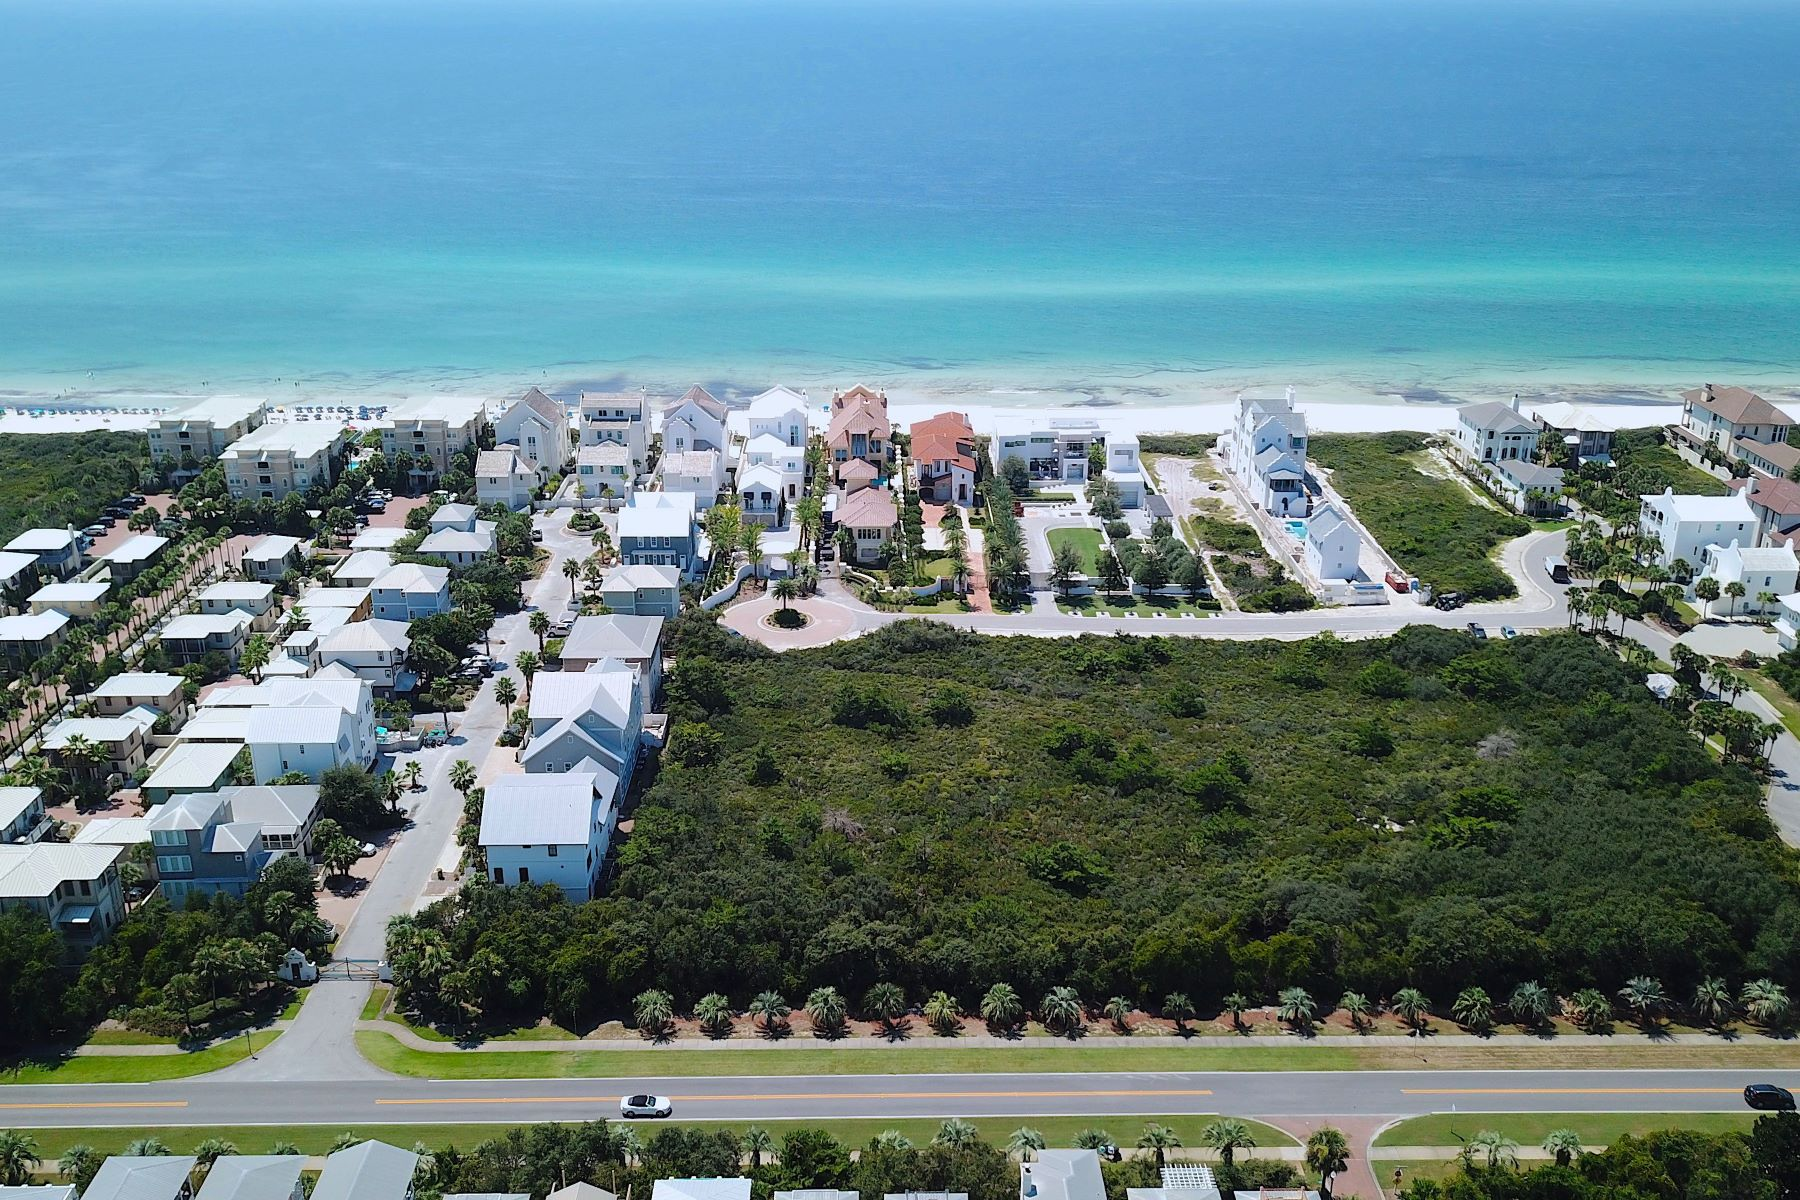 Terreno por un Venta en Second-Row Homesite in Gated Gulf-Front 30A Community Lot 7 Paradise By the Sea Court, Seacrest, Florida 32461 Estados Unidos